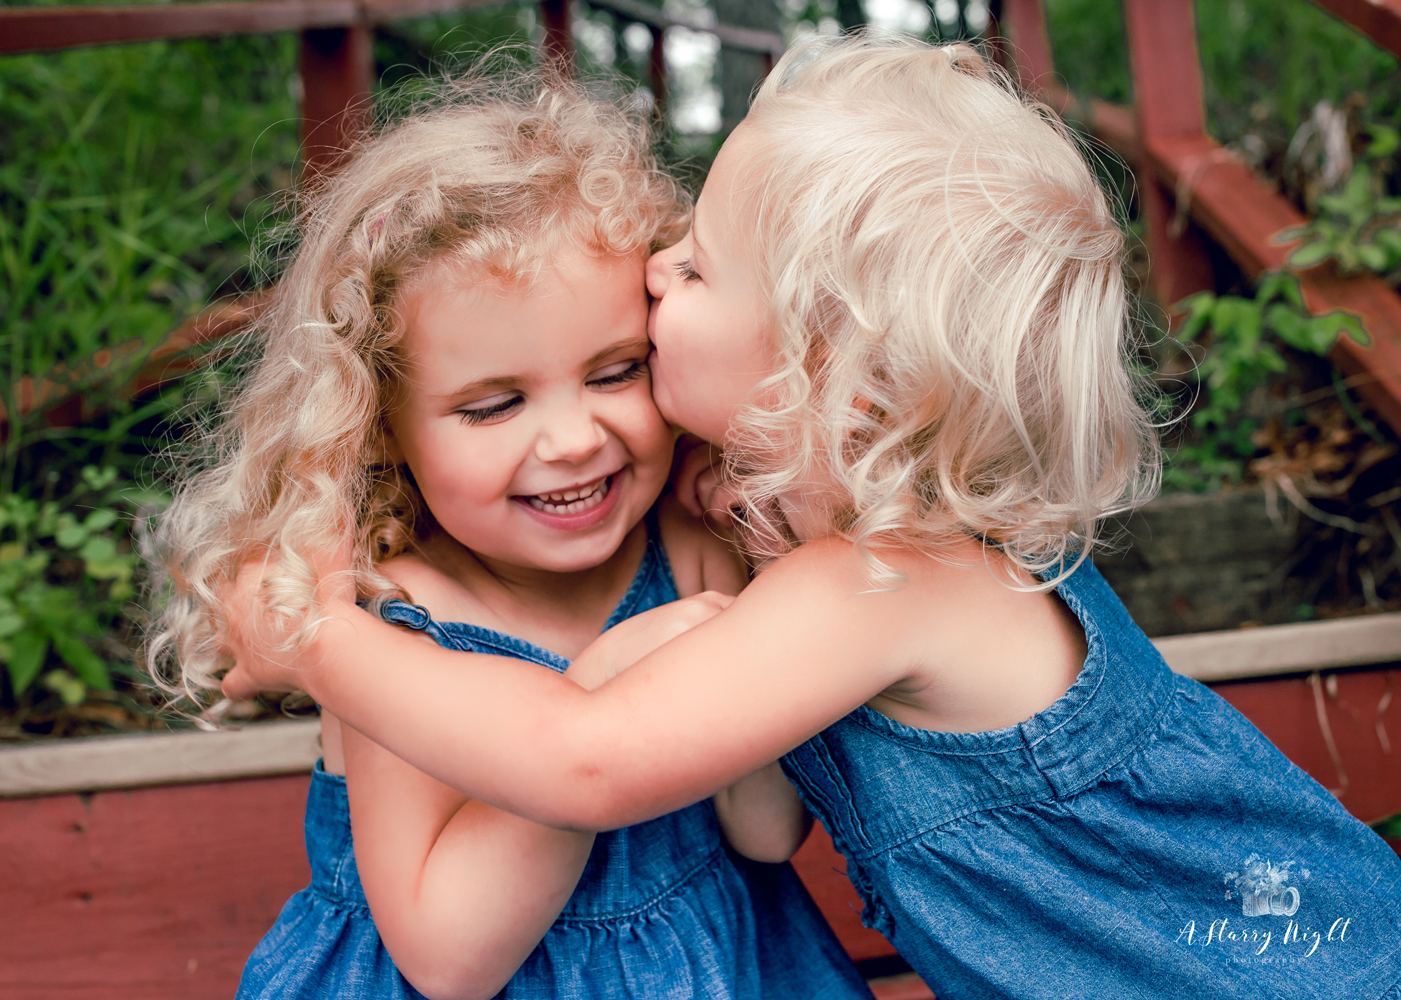 Sister hugging during their family portraits and photography session at Alcona State Park on the lake in Glennie, MI.